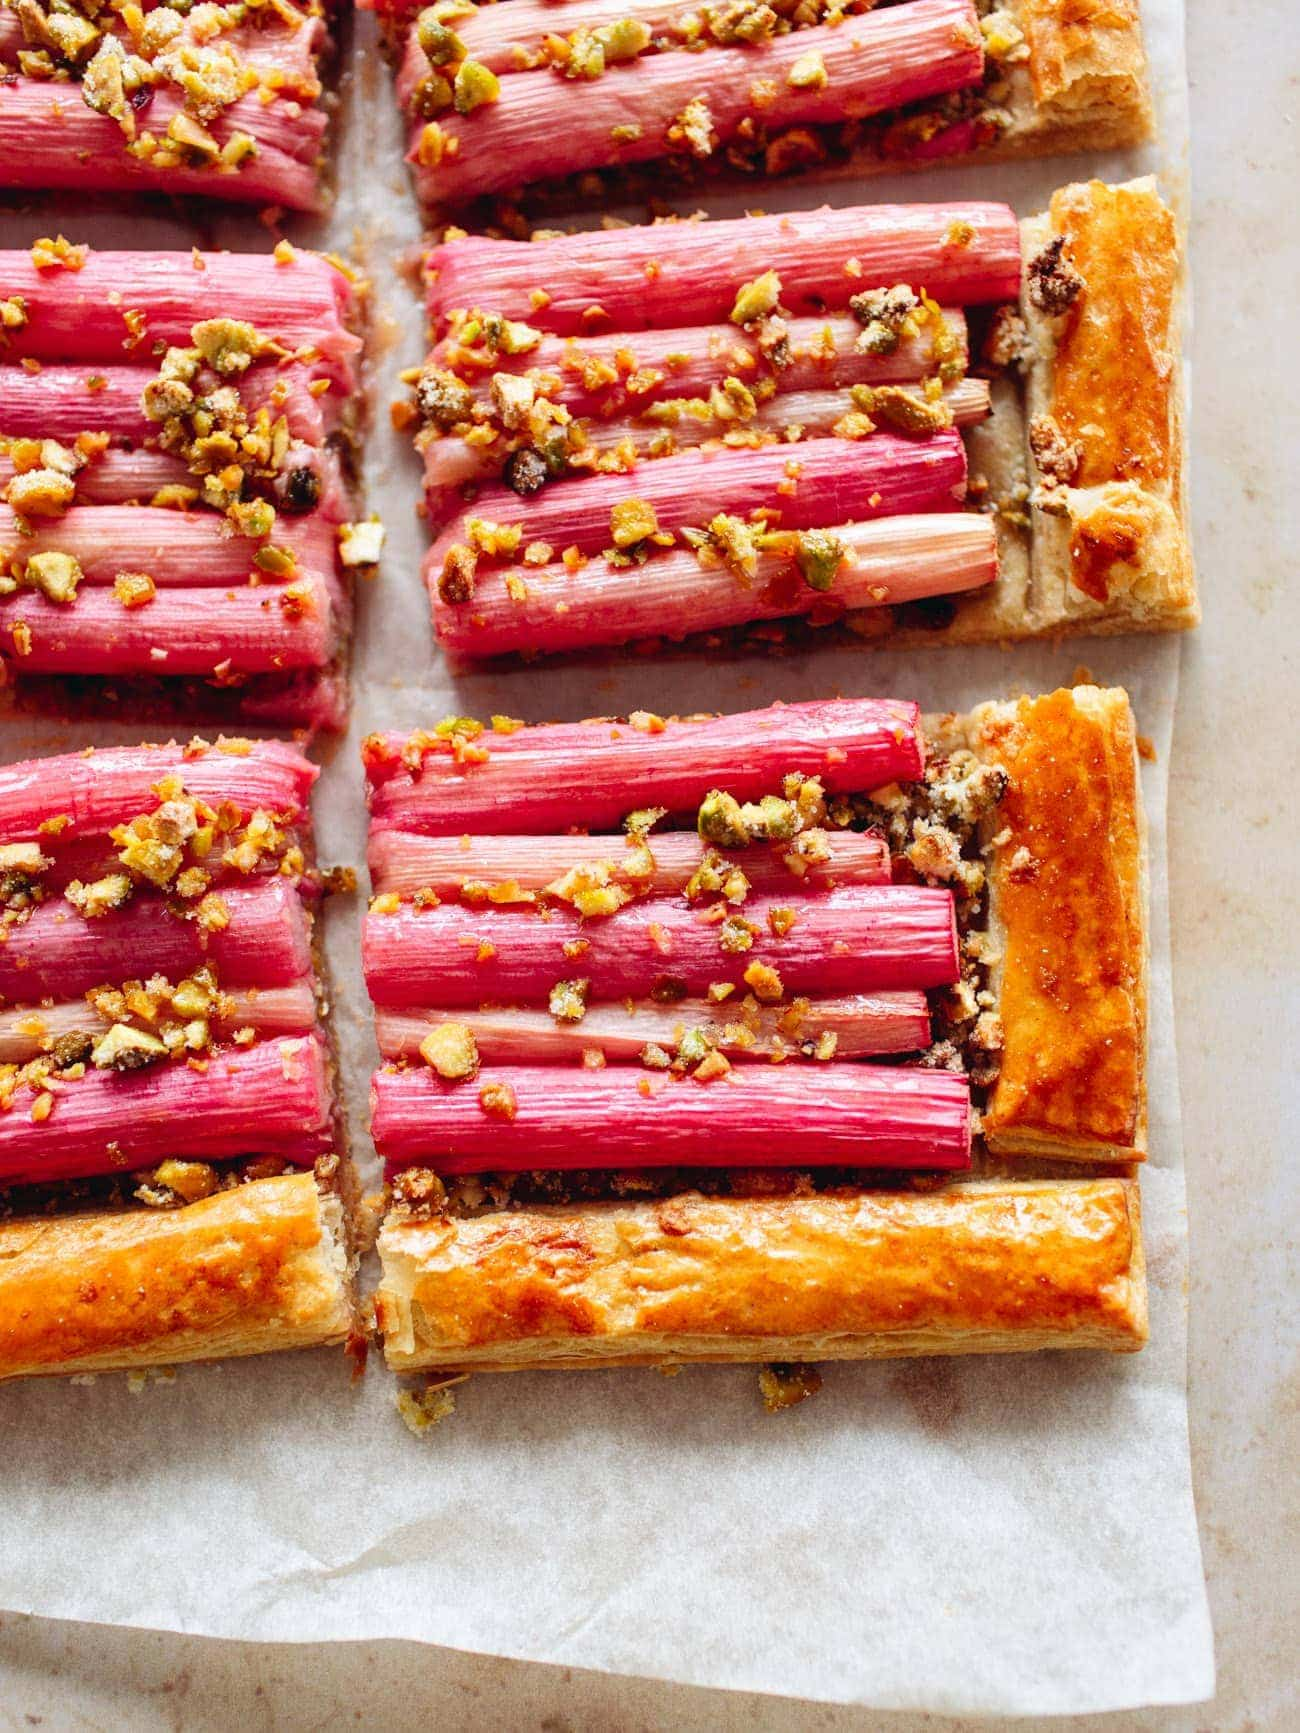 Simple Rhubarb Tart with chopped pistachios by Izy Hossack